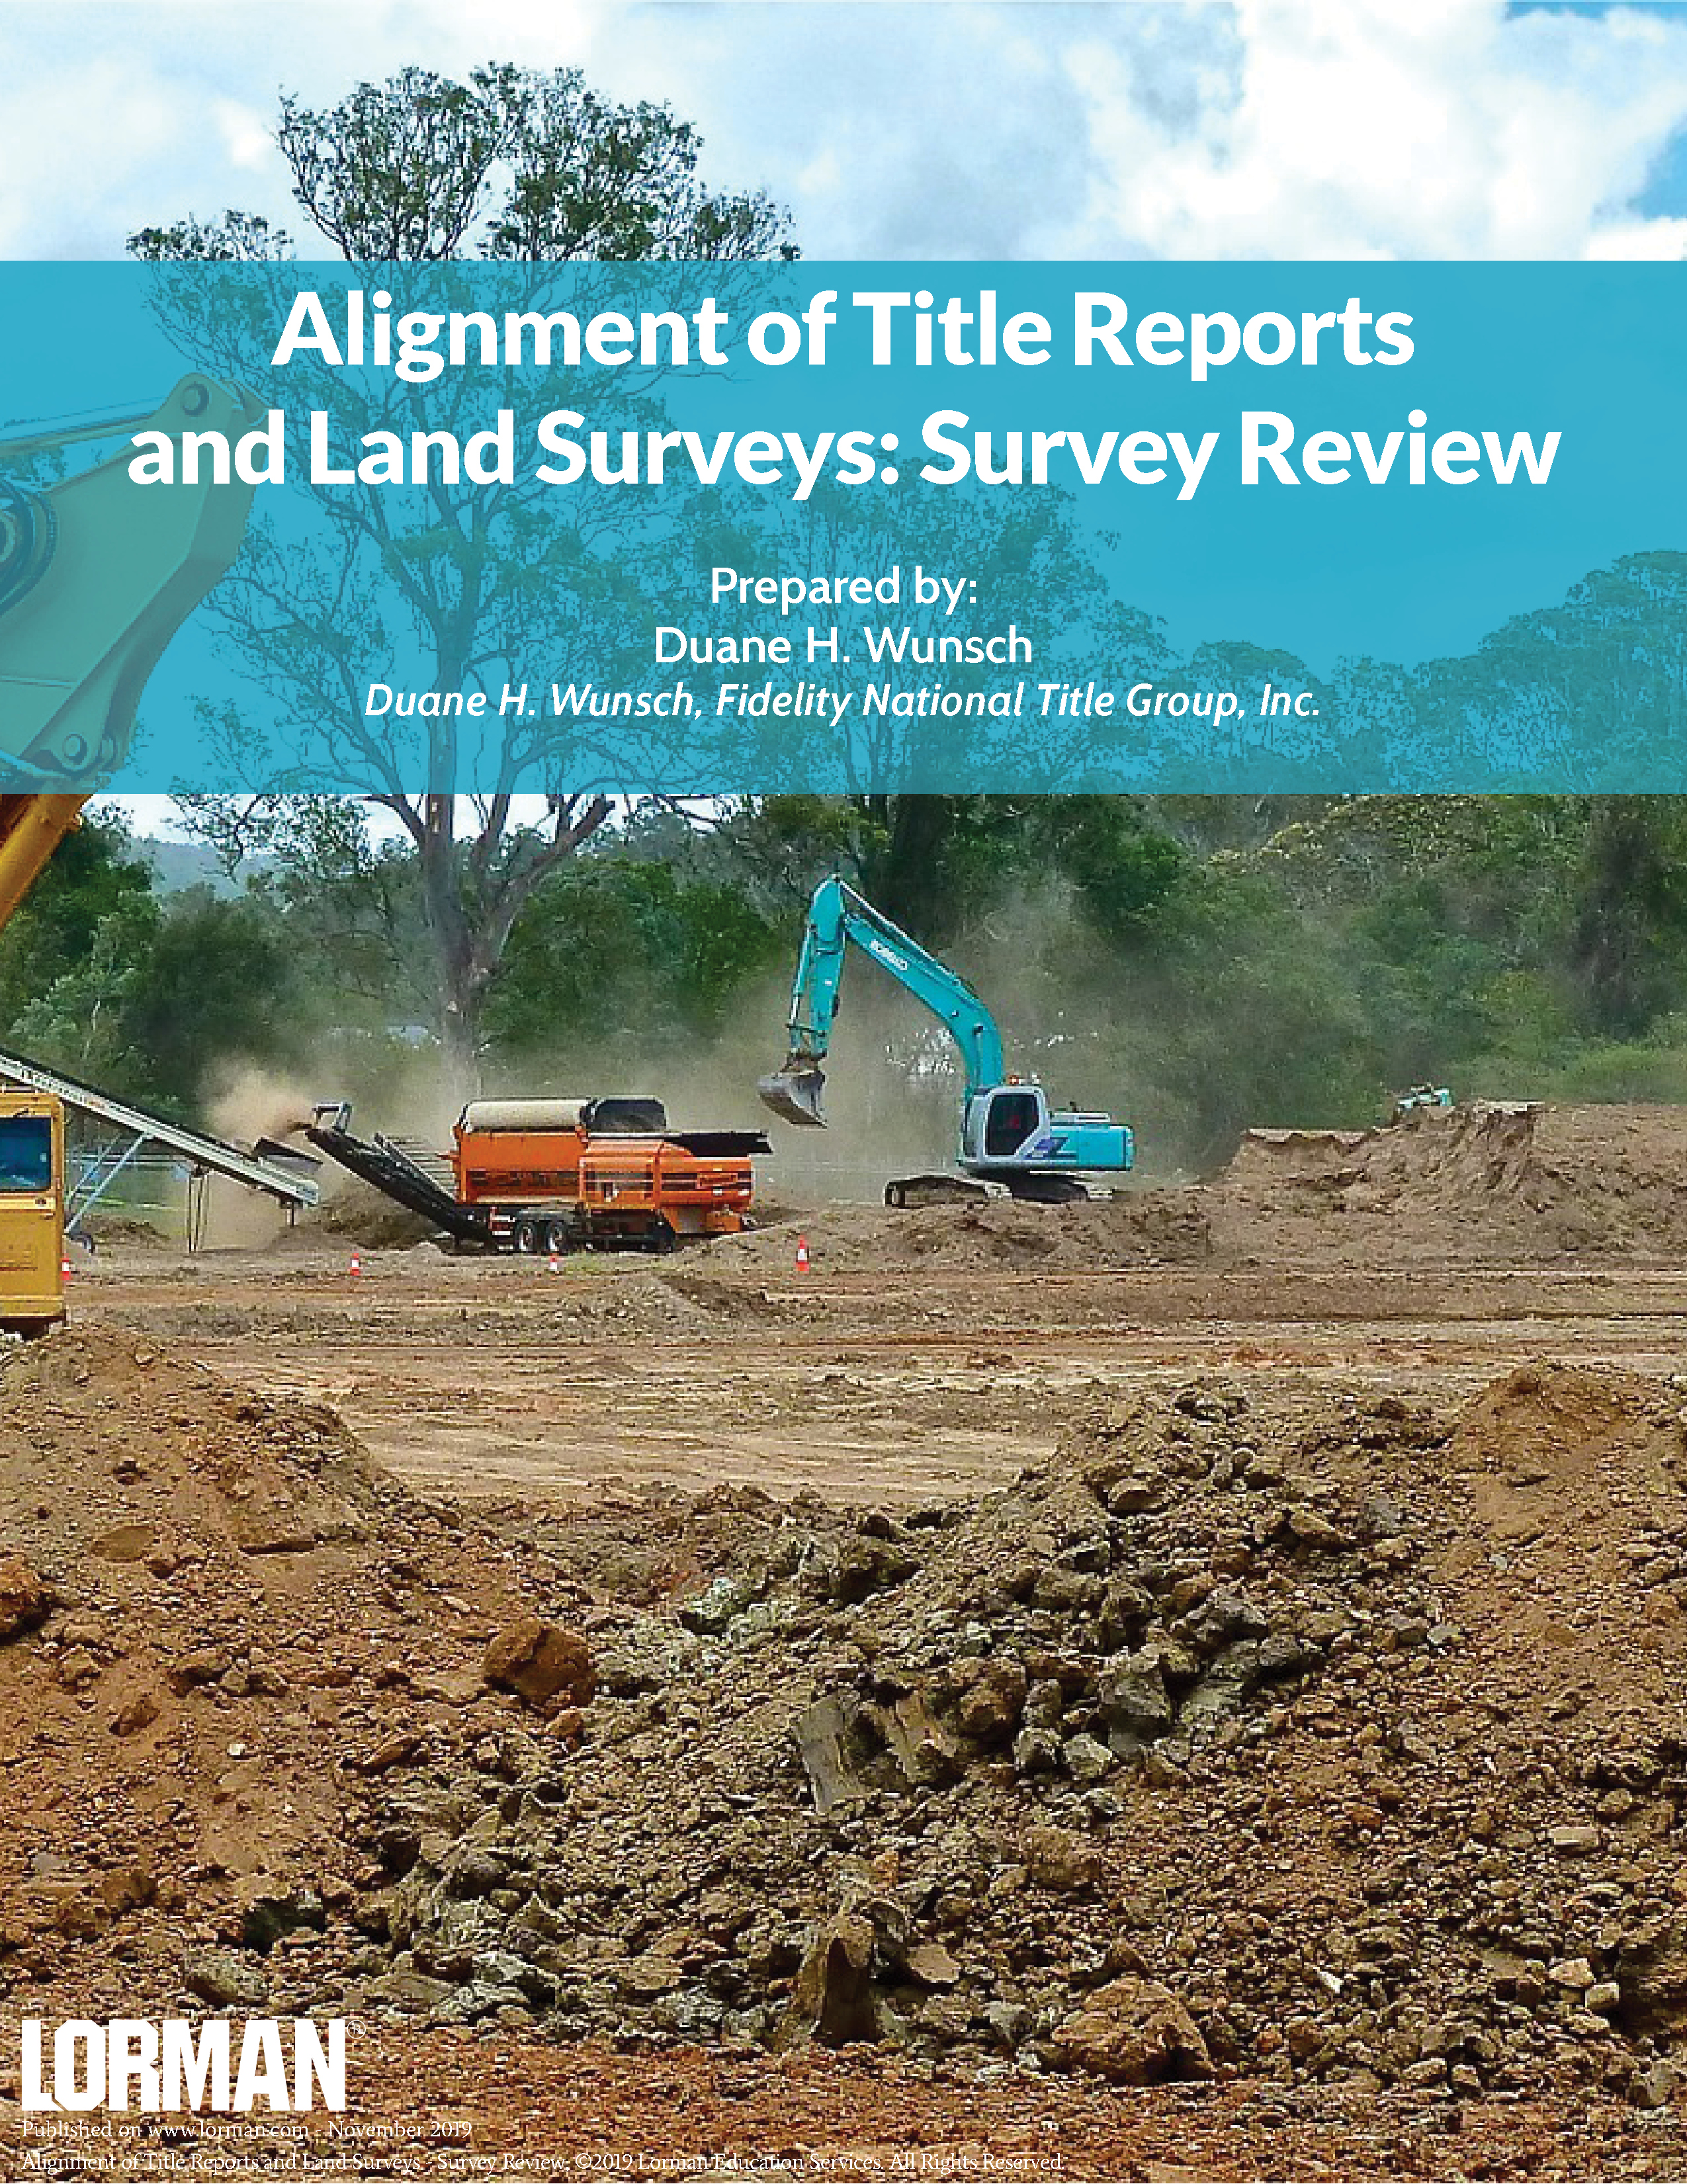 Alignment of Title Reports and Land Surveys - Survey Review